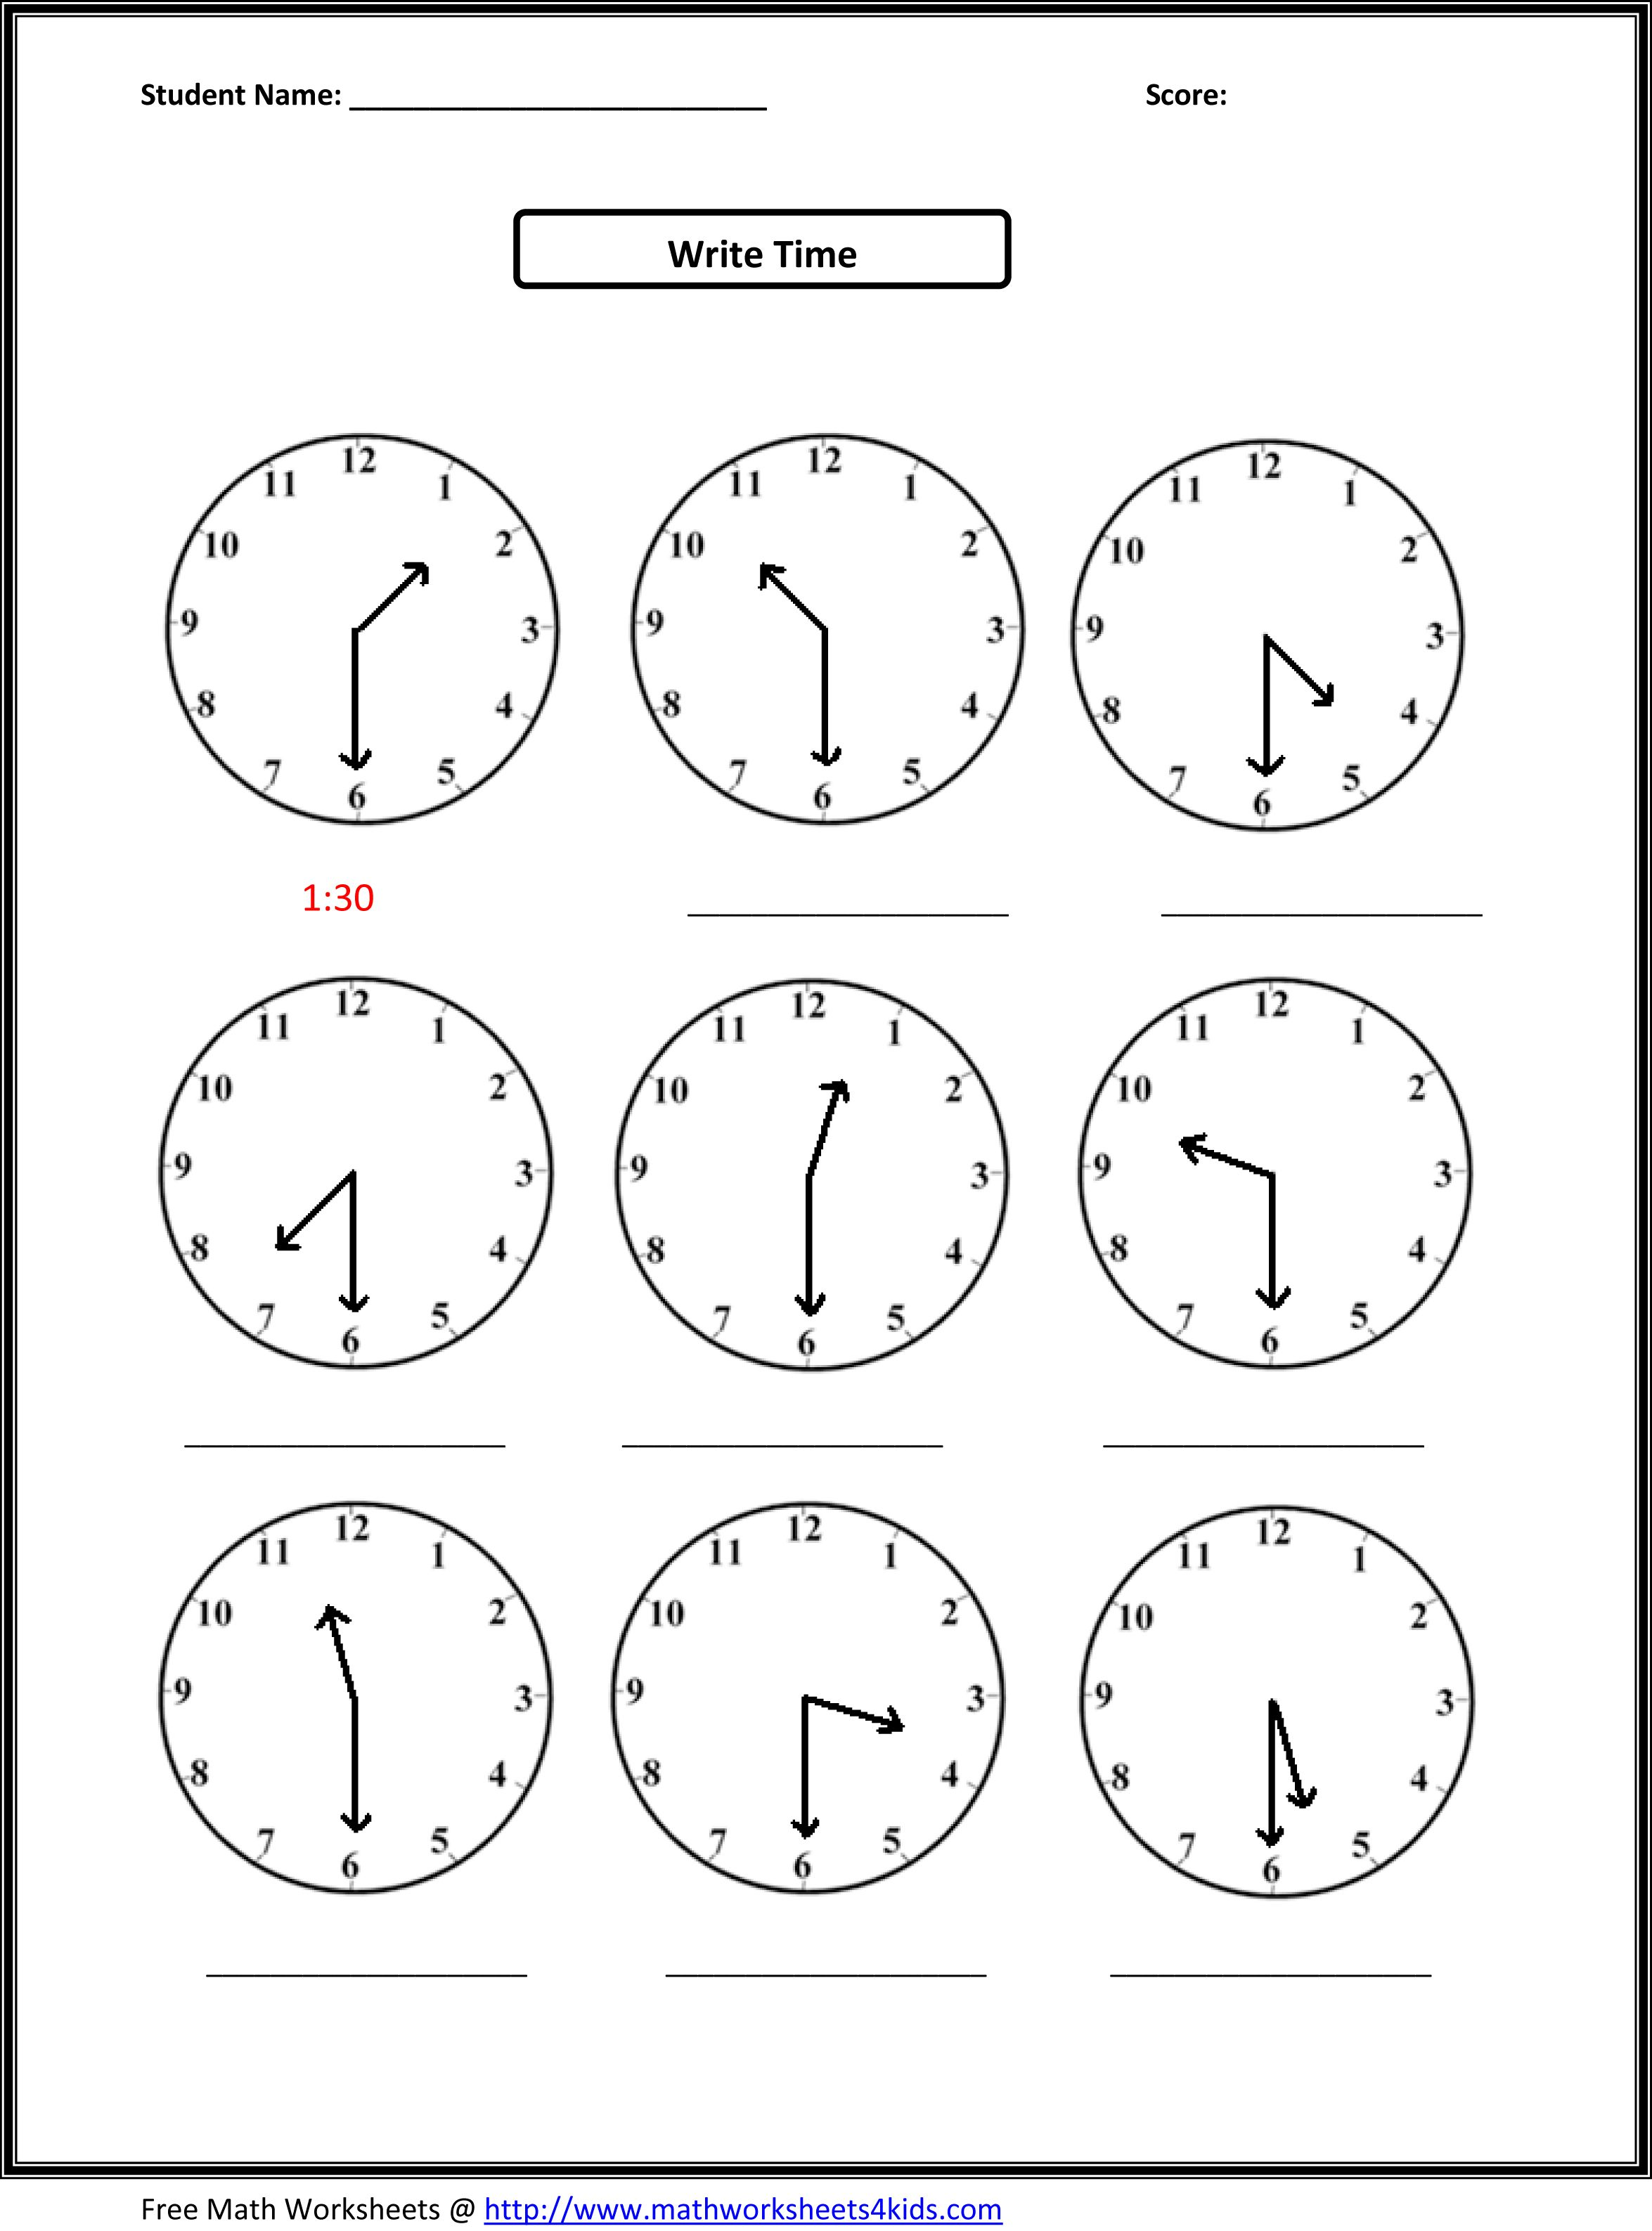 Proatmealus  Scenic Worksheet On Time For Grade   Reocurent With Fair Free Printable Telling Time Worksheets Nd Grade  Reocurent With Nice Weathering And Soil Formation Worksheet Answers Also Why Is Life Like A Shower Math Worksheet Answers In Addition Domain And Range Worksheet Algebra  And Digestive System Worksheet As Well As Division Worksheet Additionally Complex Numbers Worksheet From Reocurentcom With Proatmealus  Fair Worksheet On Time For Grade   Reocurent With Nice Free Printable Telling Time Worksheets Nd Grade  Reocurent And Scenic Weathering And Soil Formation Worksheet Answers Also Why Is Life Like A Shower Math Worksheet Answers In Addition Domain And Range Worksheet Algebra  From Reocurentcom